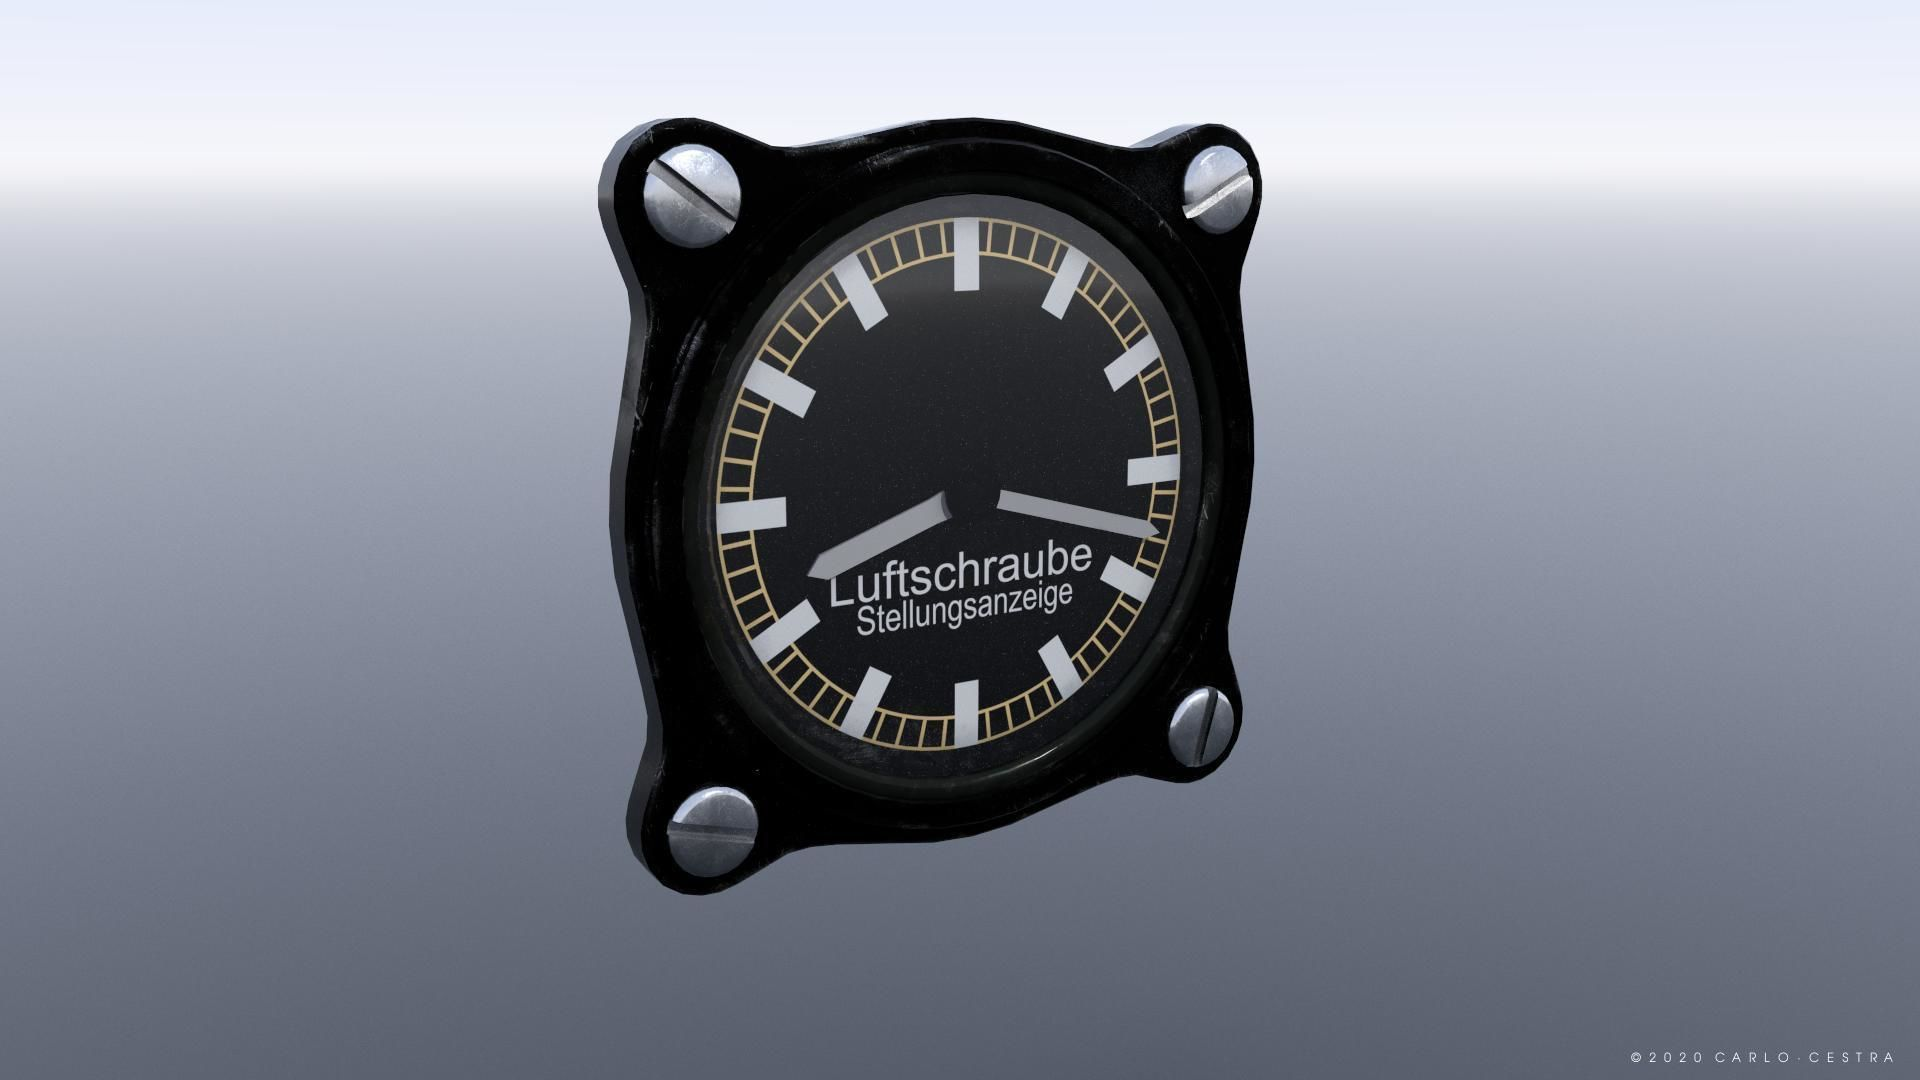 GERMAN PROPELLER PITCH INDICATOR